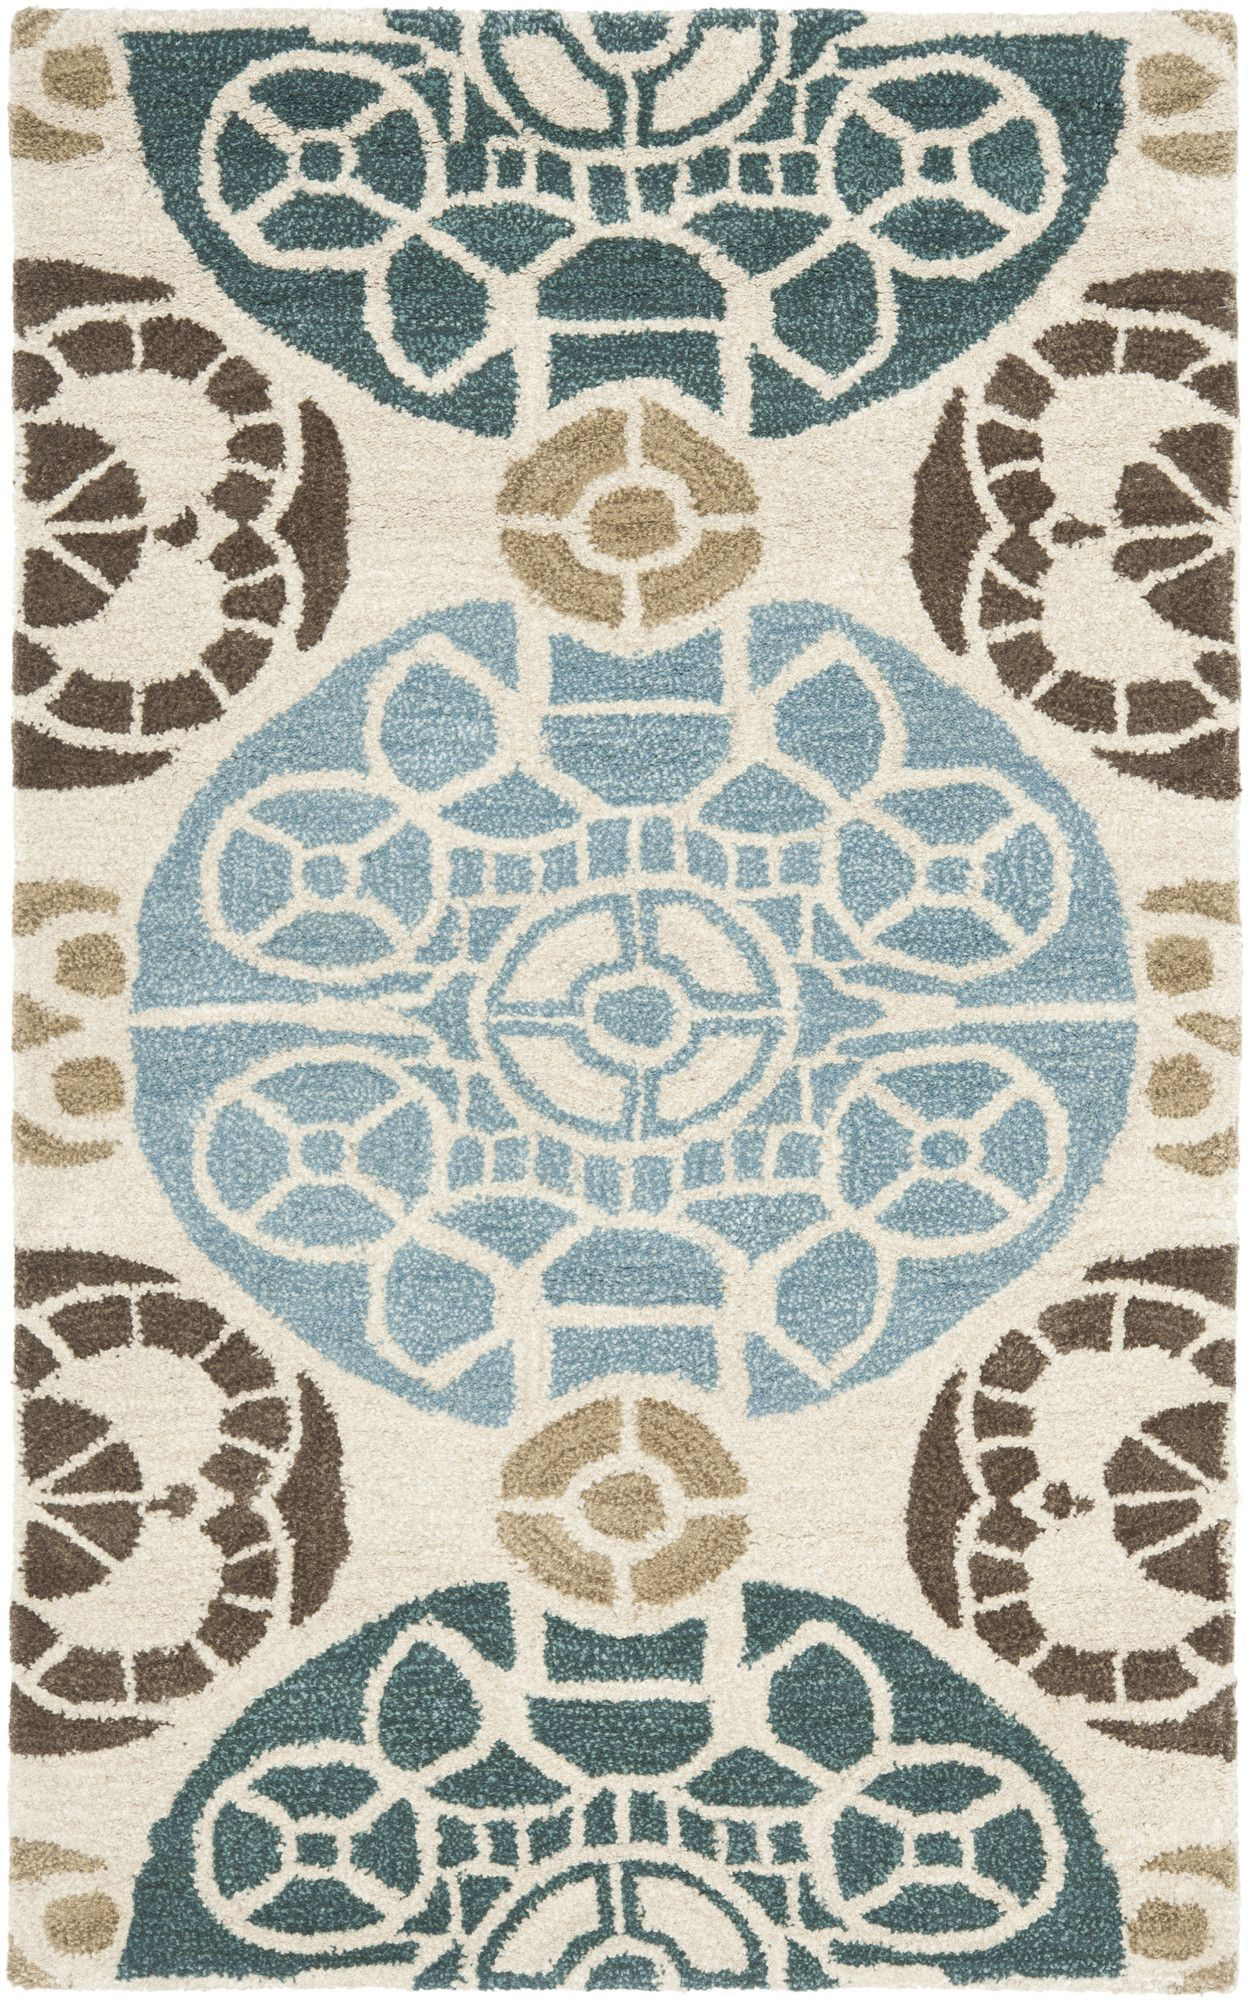 Oatmeal johnsen living room pinterest products rugs and wool - Products